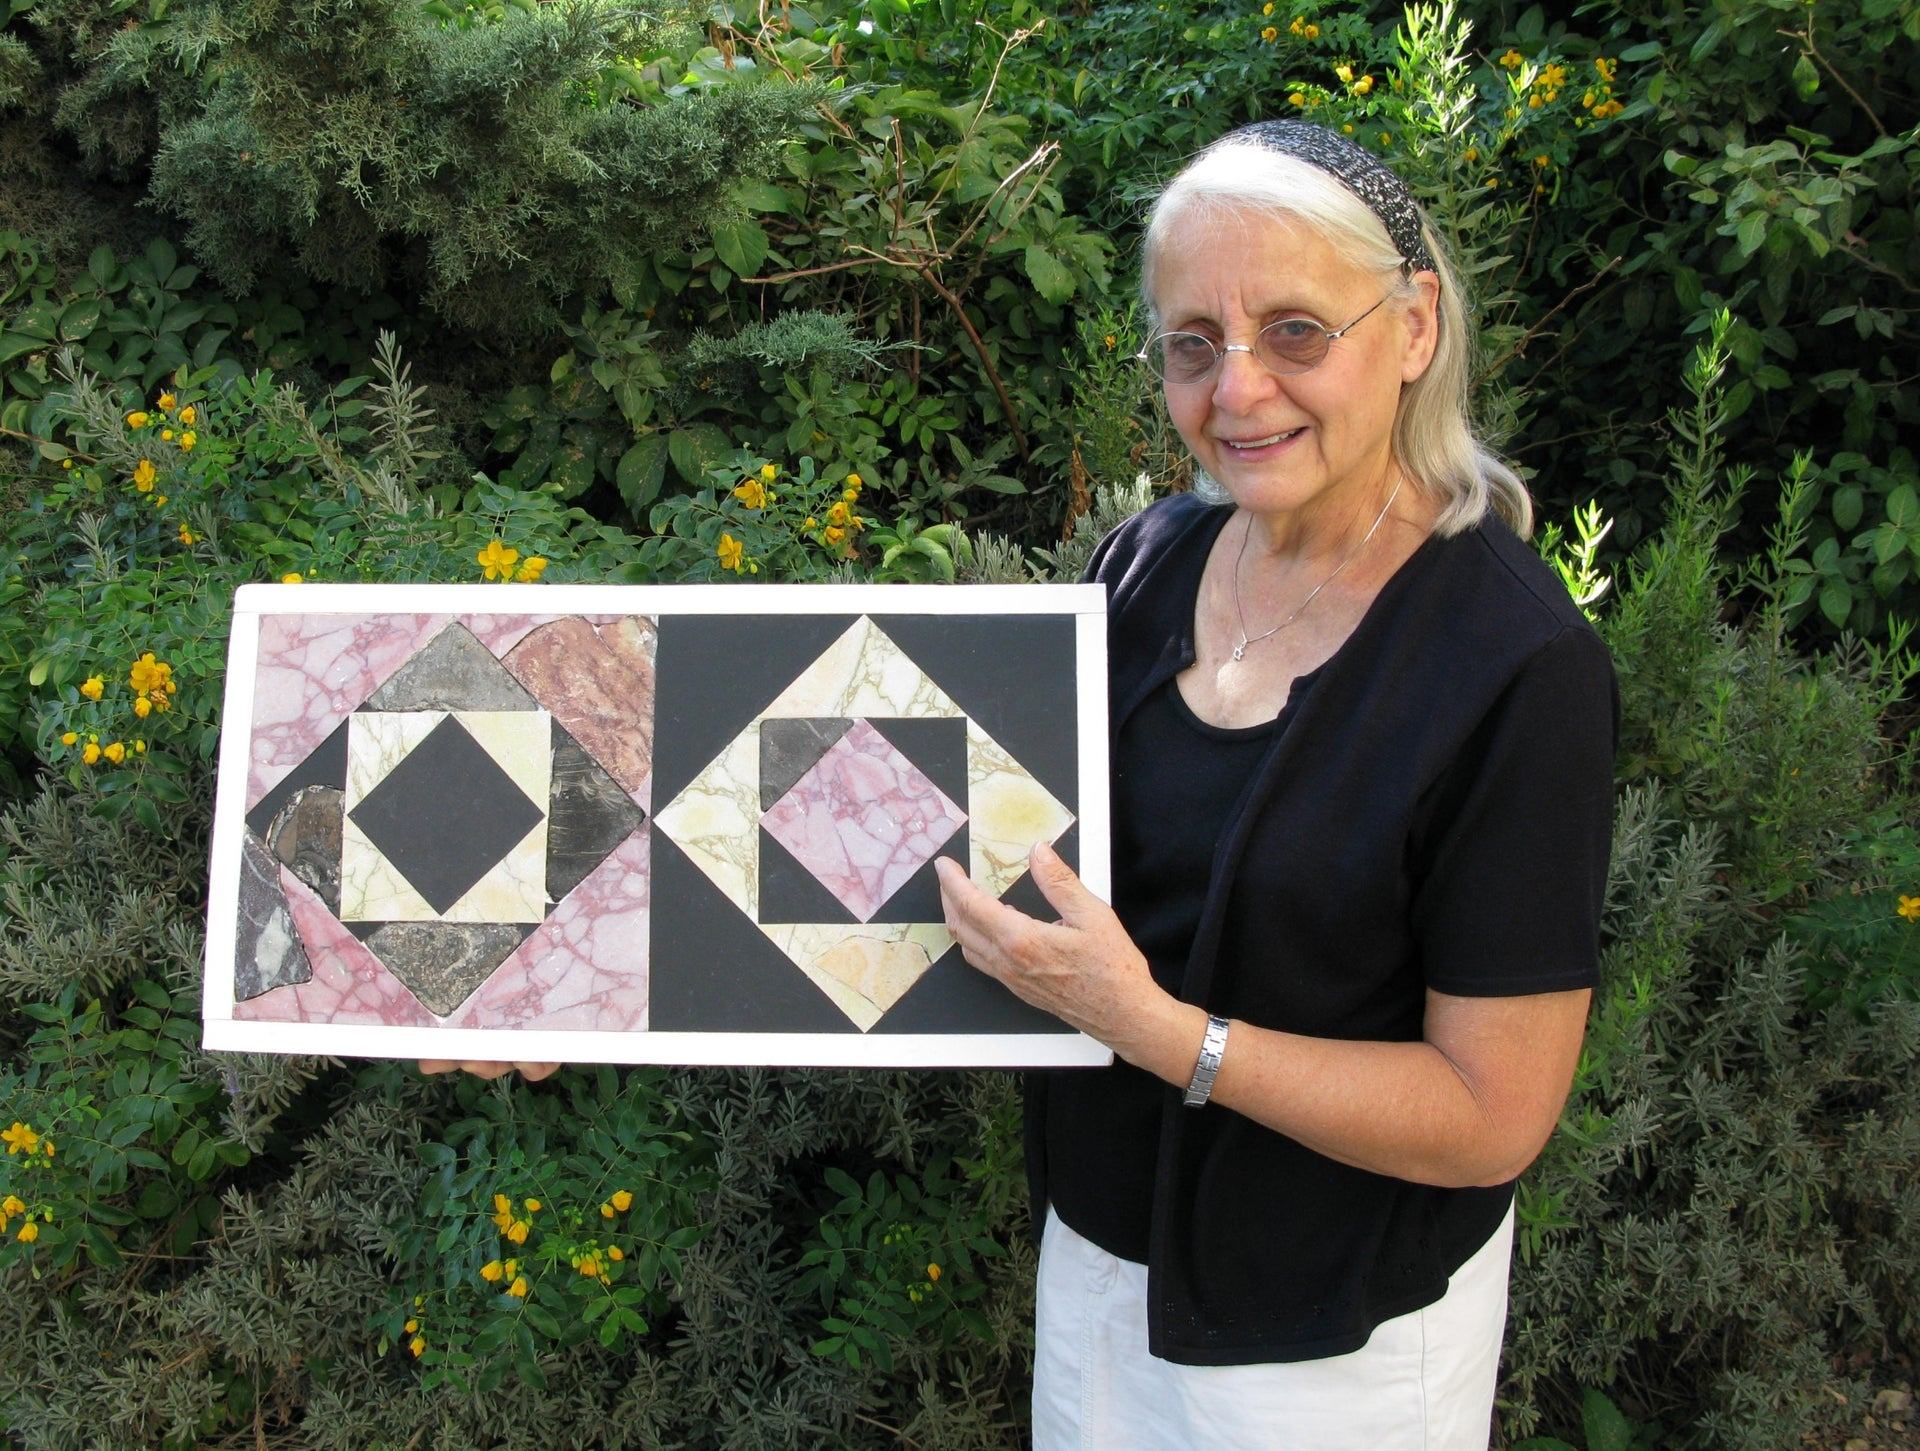 Frankie Snyder, shoulder-length smooth white hair, wearing glasses, black shirt and sweater, and white trousers, holding an example of two restored floor tiles from the courtyard of the Second Temple in Jerusalem.